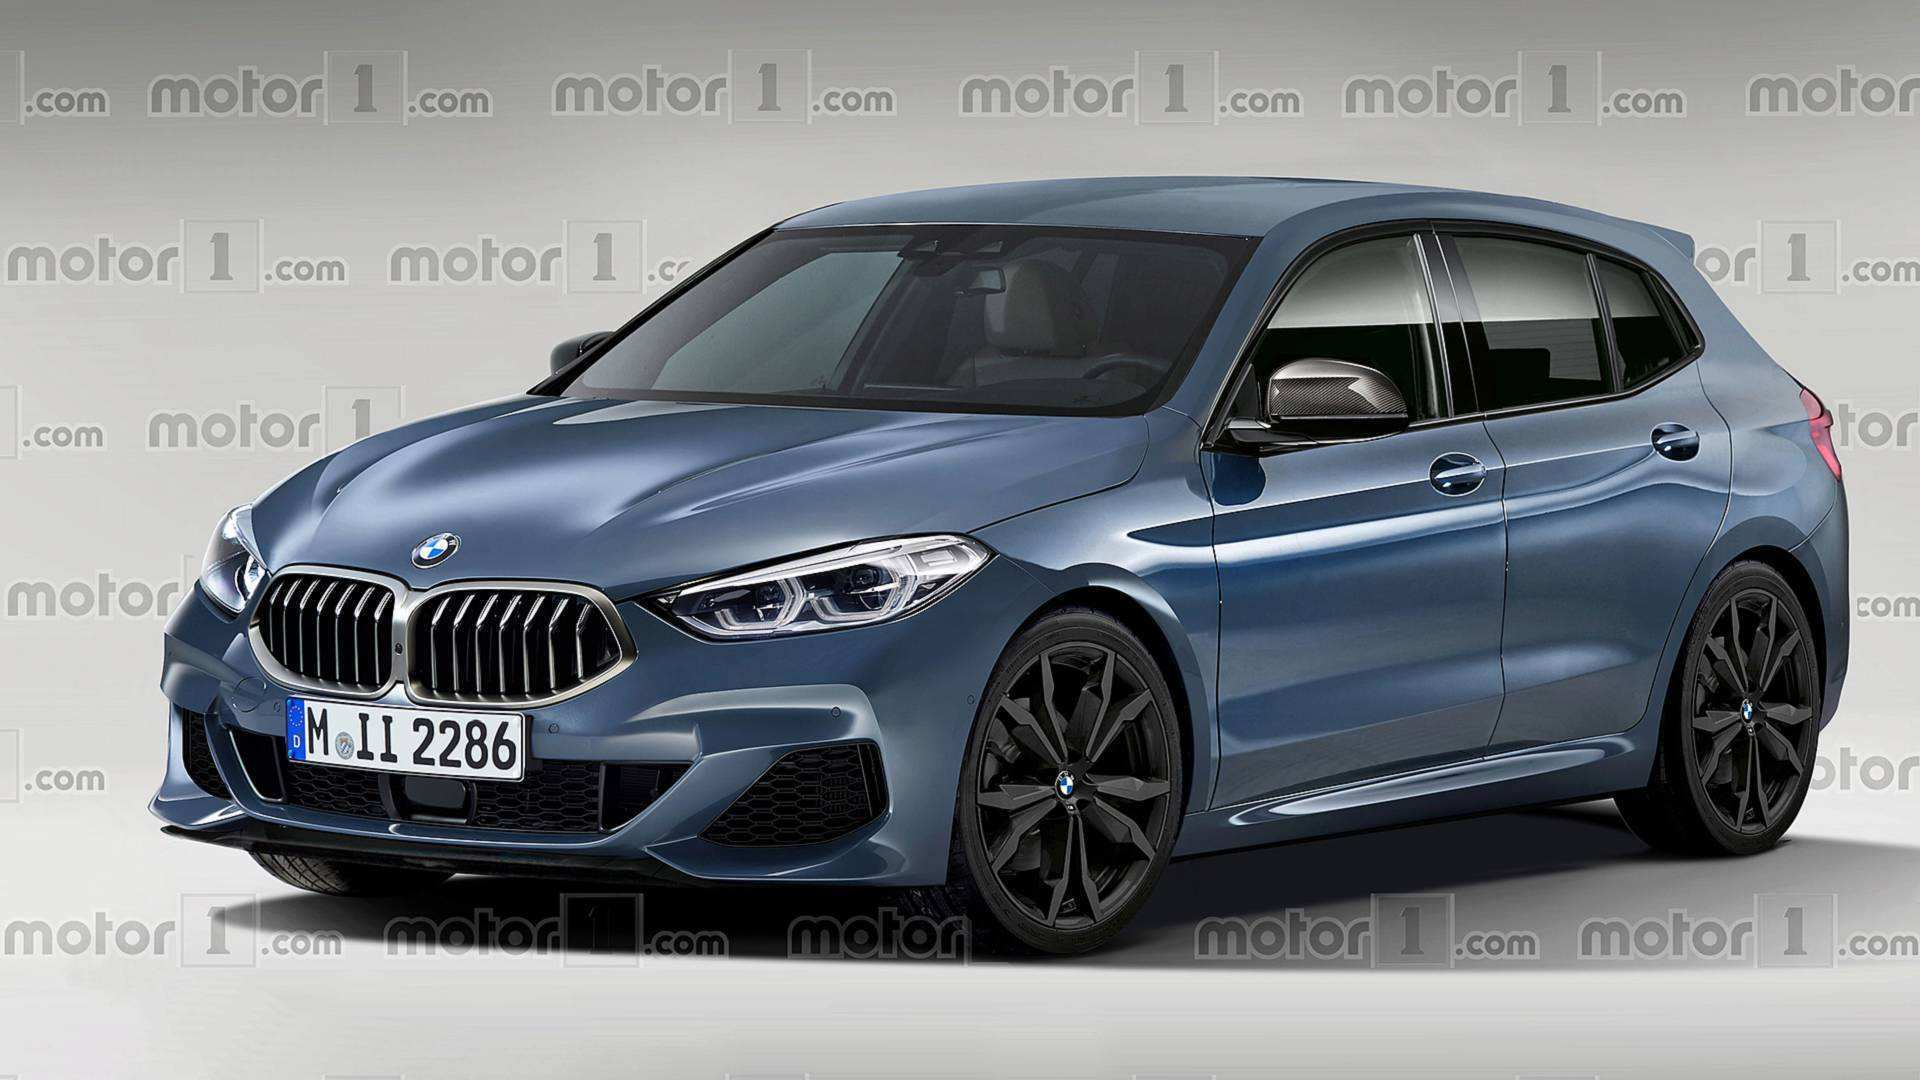 15 Great 2019 1 Series Bmw Review with 2019 1 Series Bmw